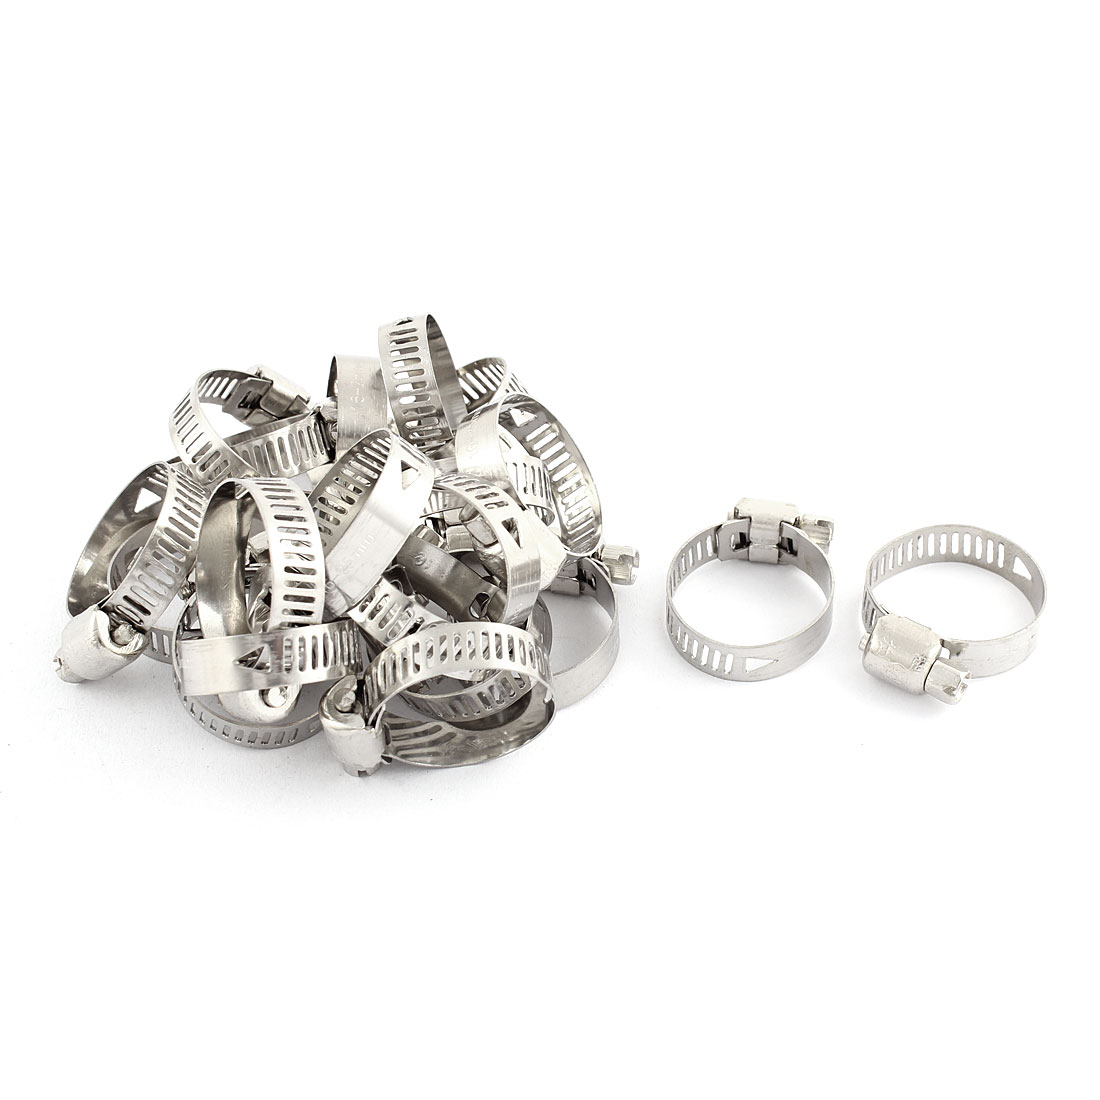 Adjustable 16-25mm Range Band Stainless Steel Wire Pipe Hose Clip Clamp 20 Pcs